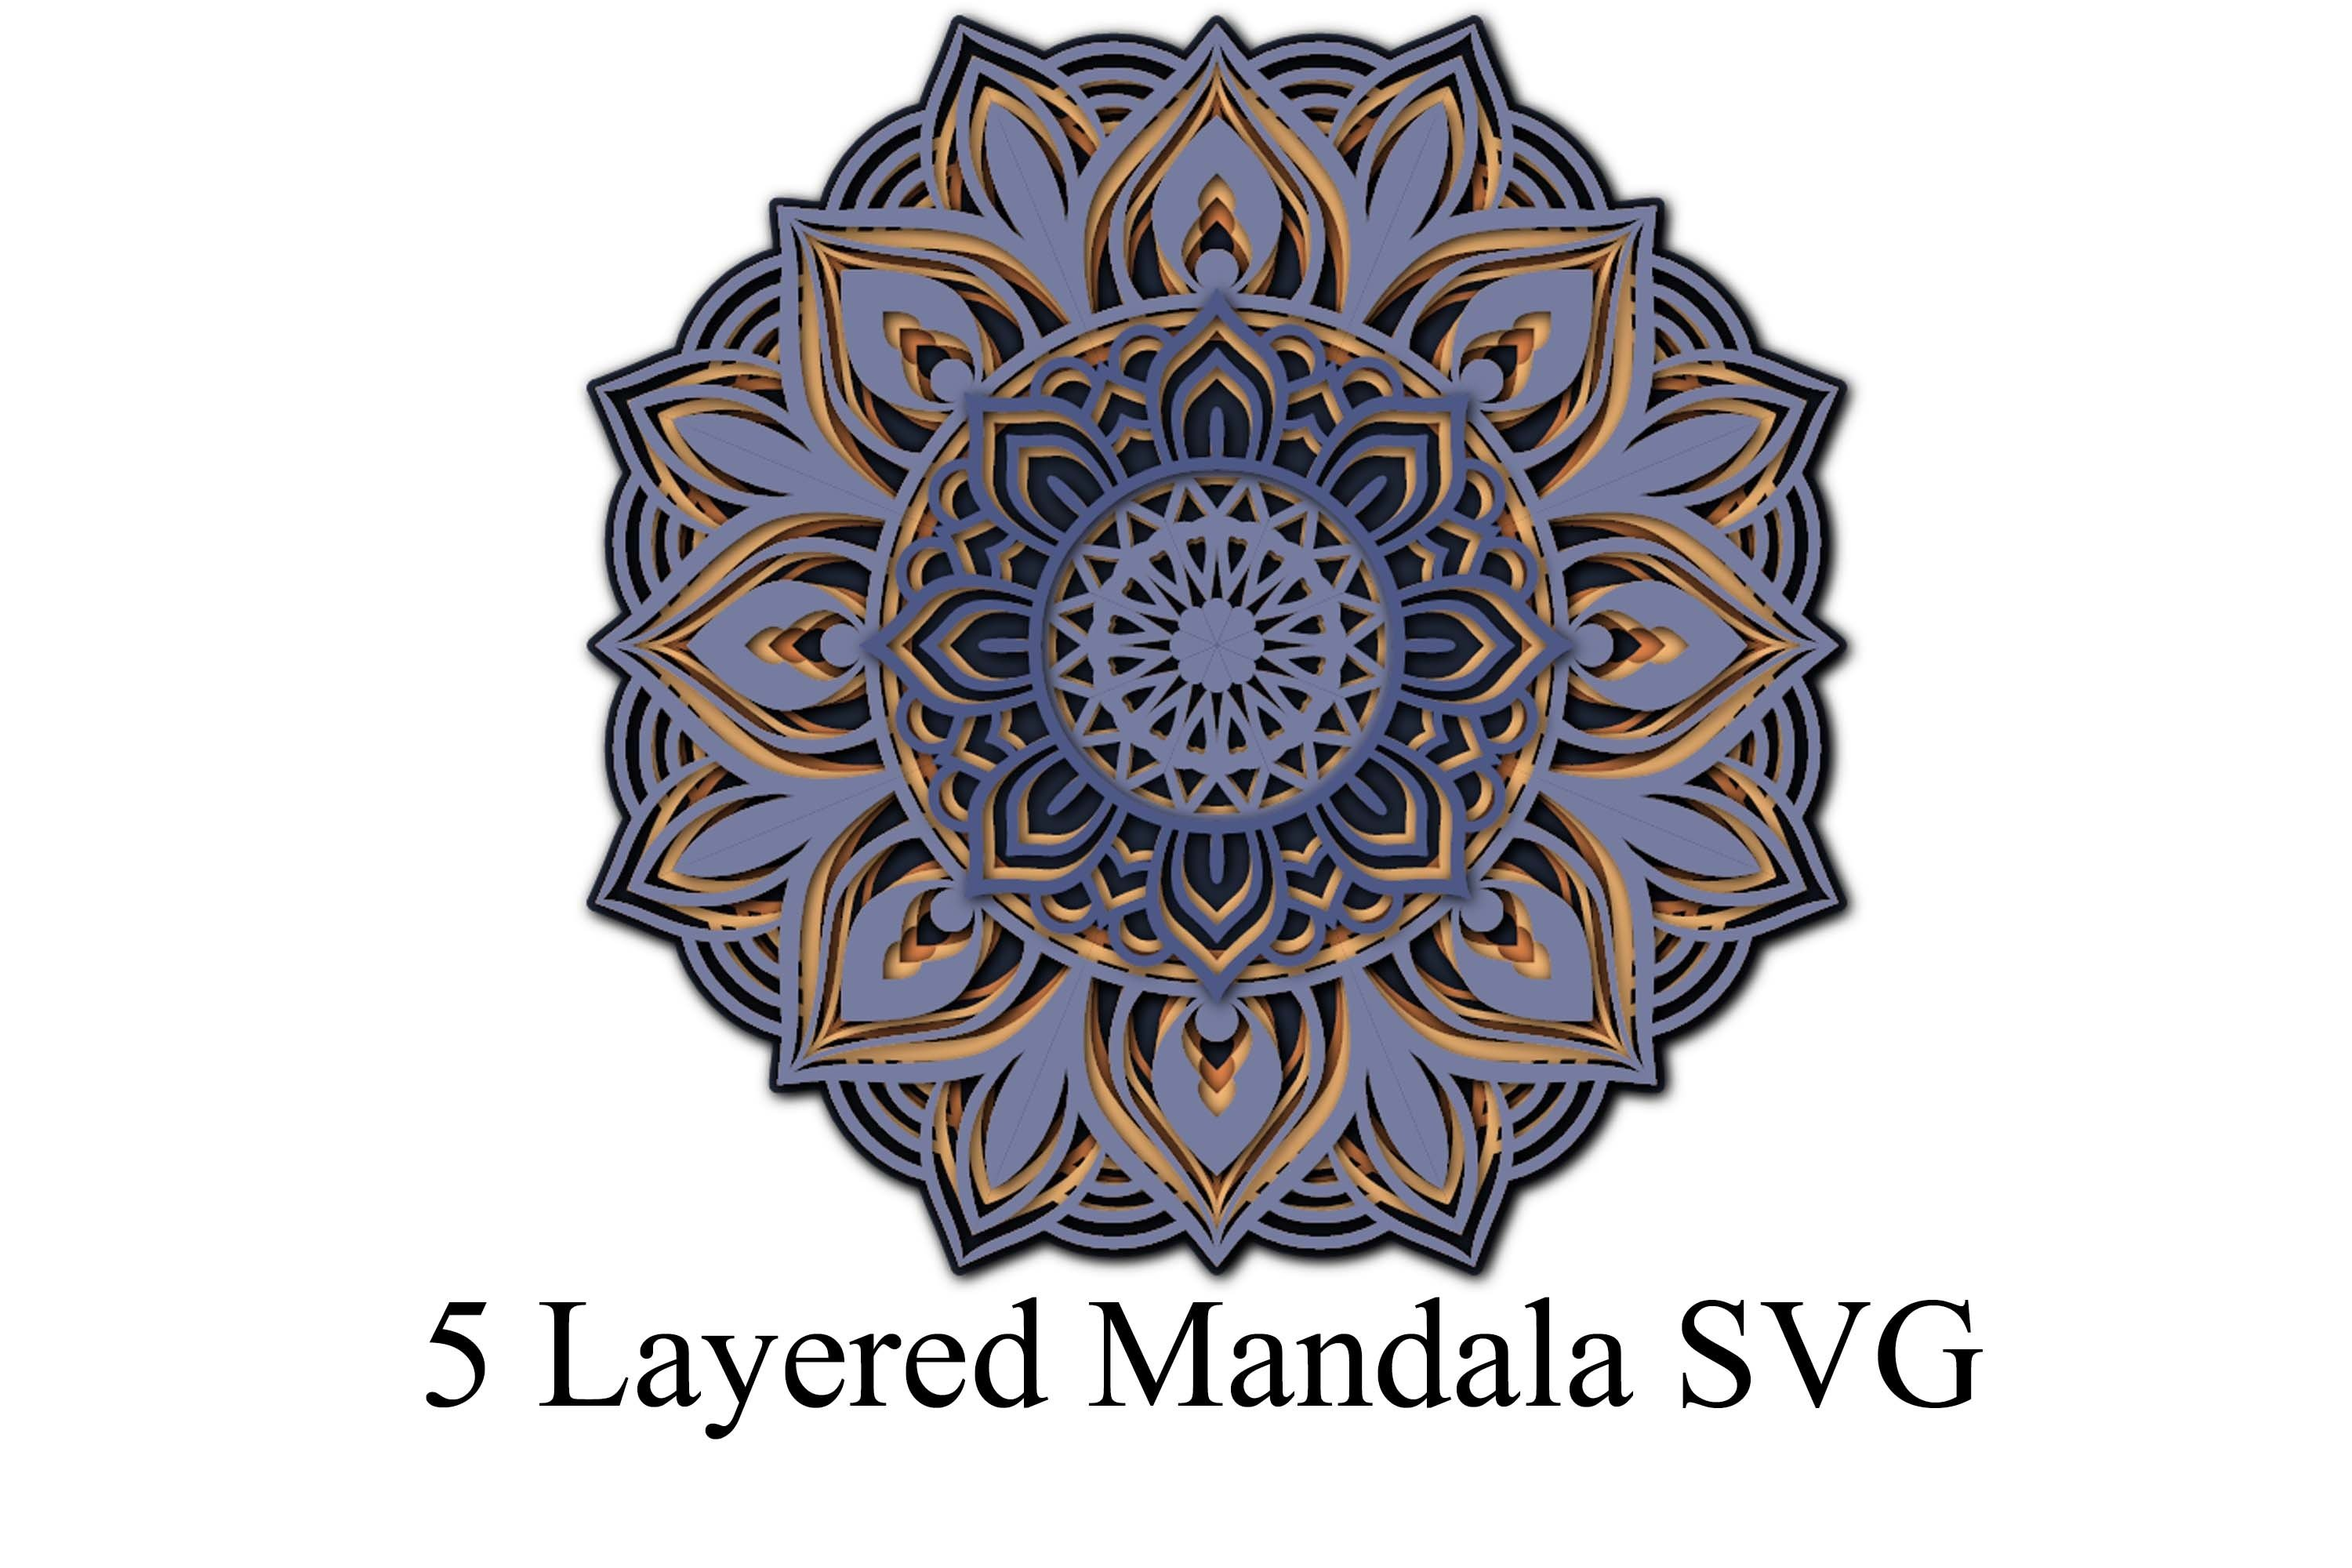 Download Free Download Svg Cut Files For Cricut And Silhouette Free 3d Mandala Svg Files For Cricut